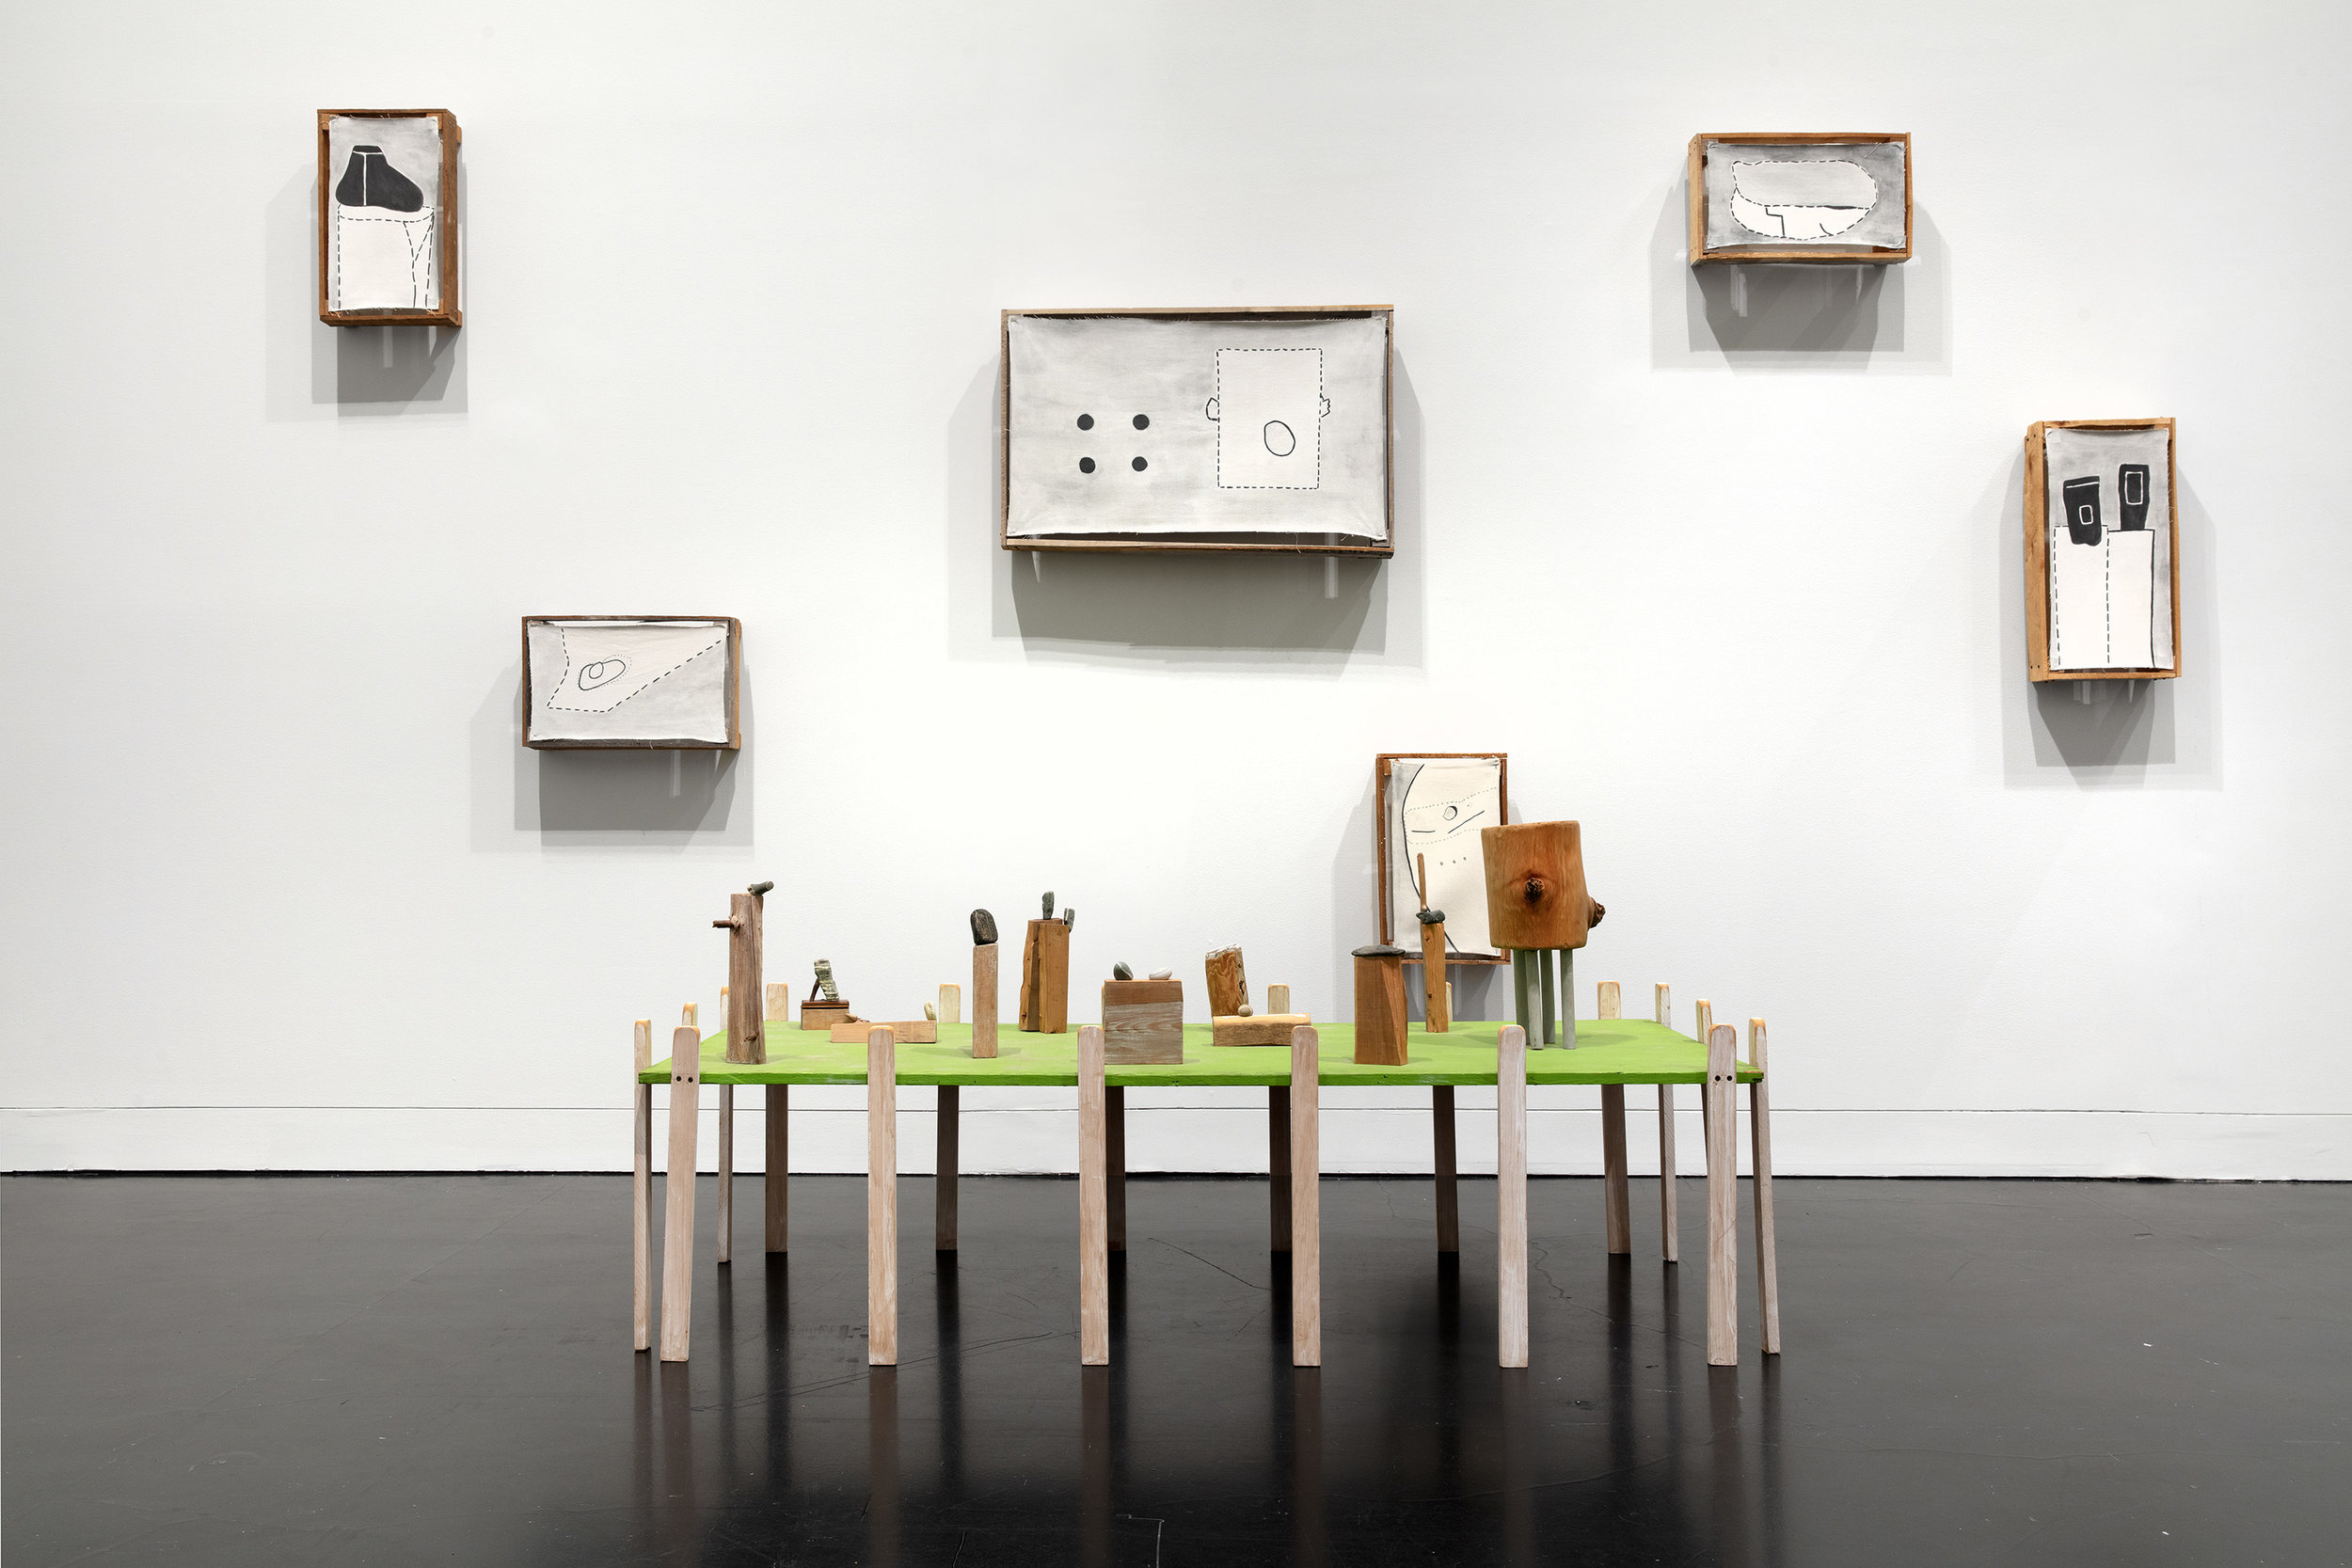 Ree Morton,  Souvenir Piece , 1973, acrylic paint on canvas mounted on wood, wood, acrylic paint, and stones, on view at the Frances Young Tang Teaching Museum and Art Gallery at Skidmore College through Jan. 5, 2020. Photograph by Jeremy Lawson.